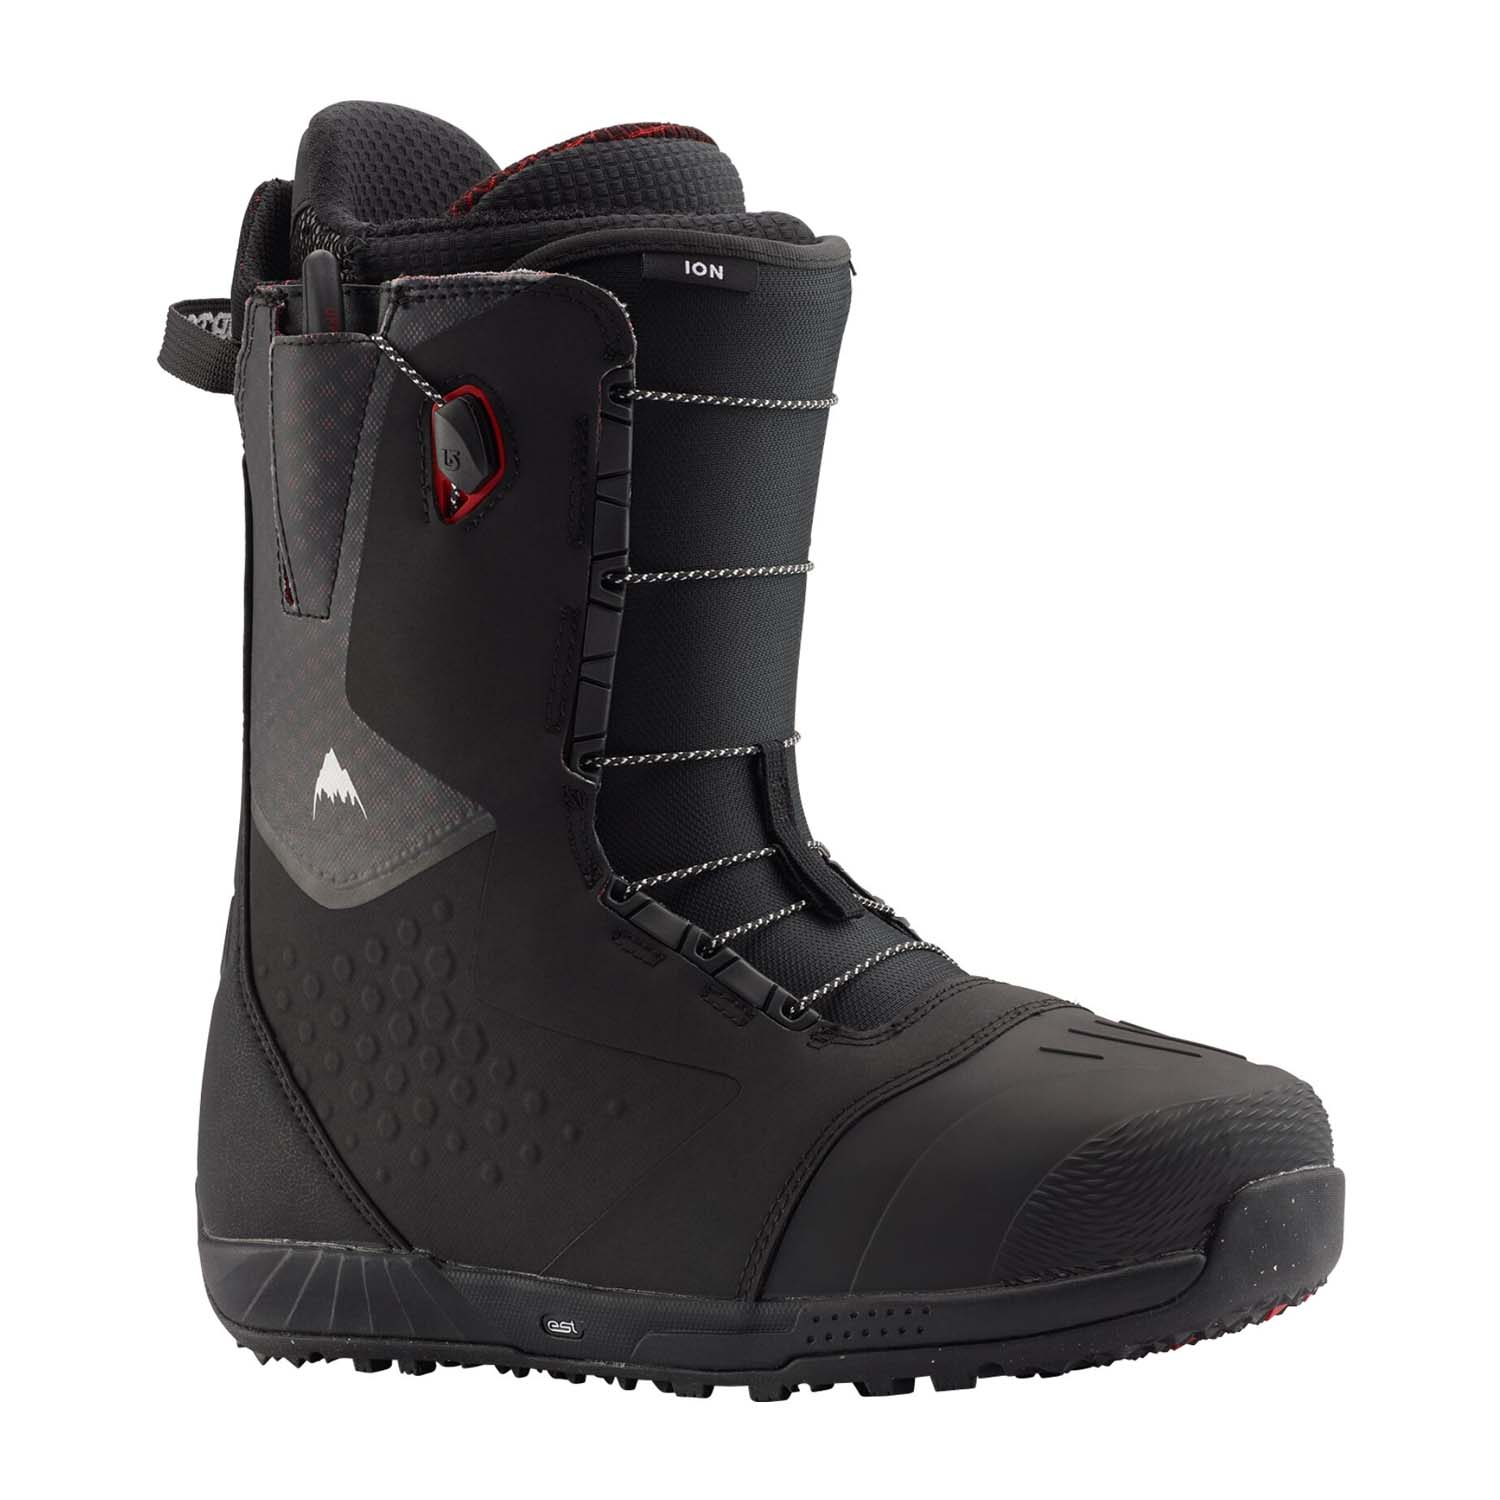 Burton Ion Snowboard Boot Black/Red 2020